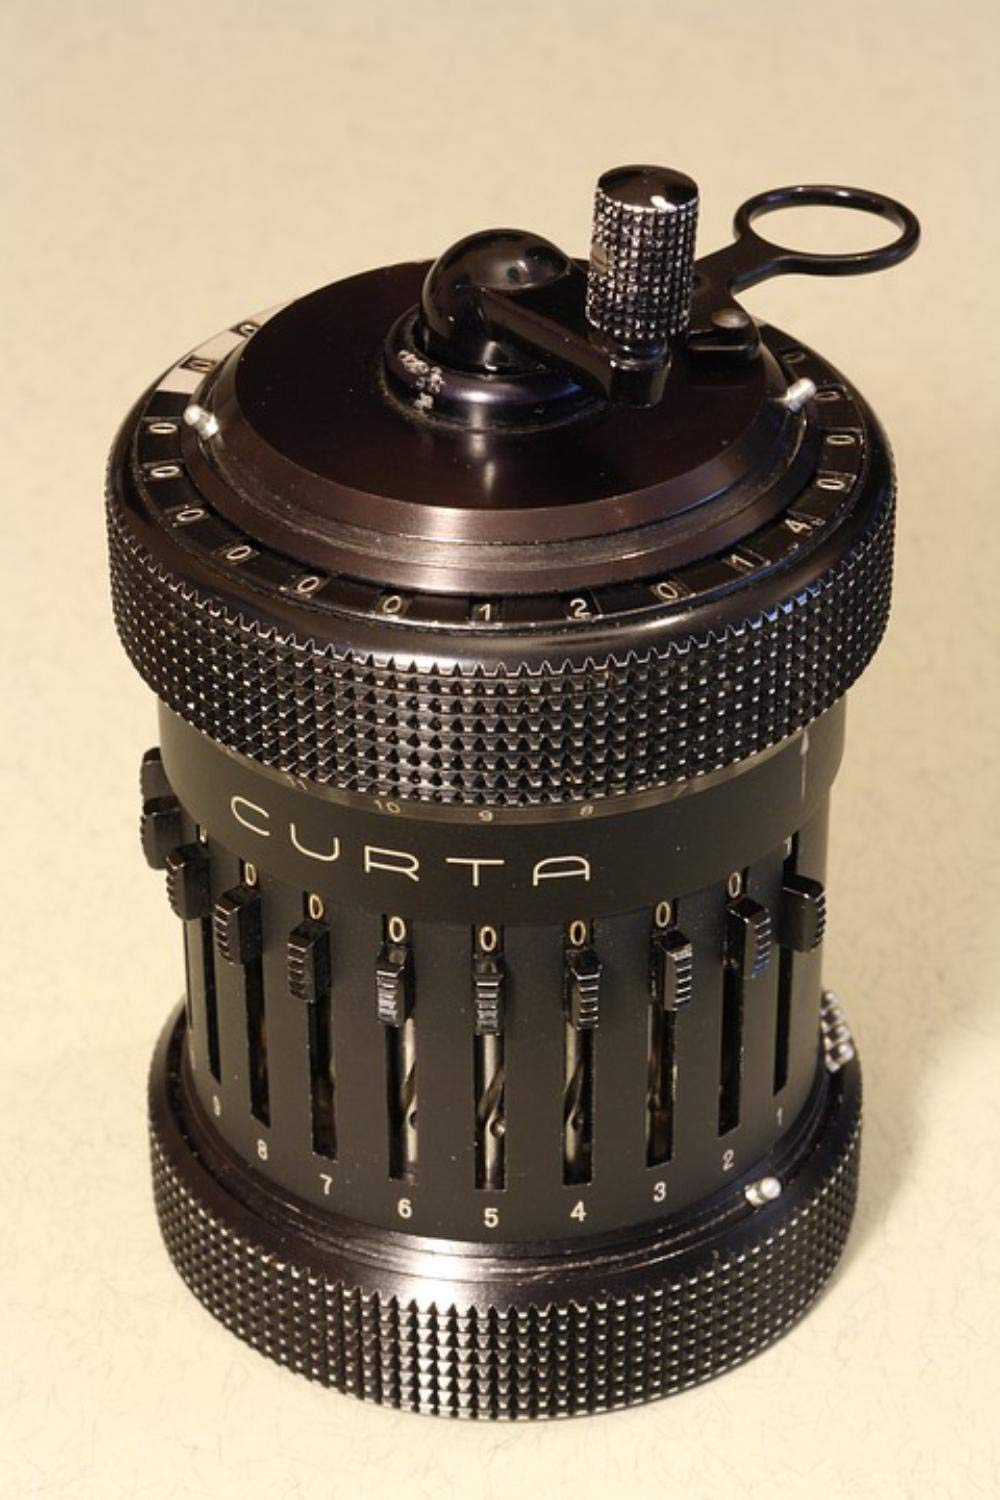 Gifts Delight LAMINATED 24x36 inches Poster: Curta Mechanical Calculator Type Ii Accurate Handheld Liechtenstein Herzstark